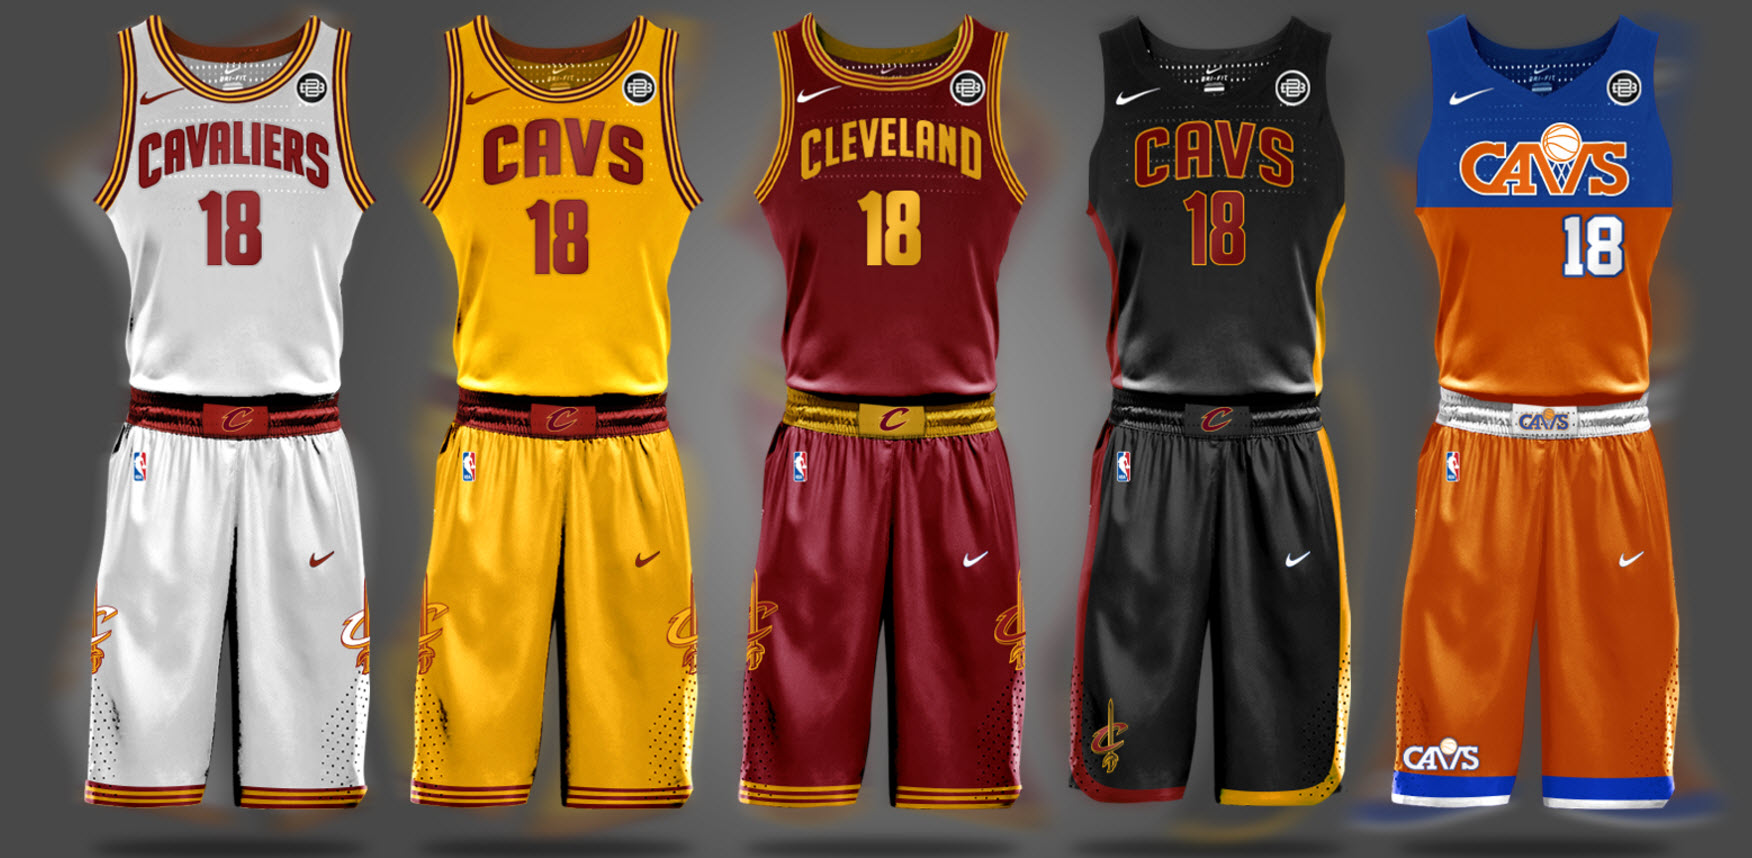 Cavs >> Look Here S One Potential Design For The Cavaliers New Jerseys